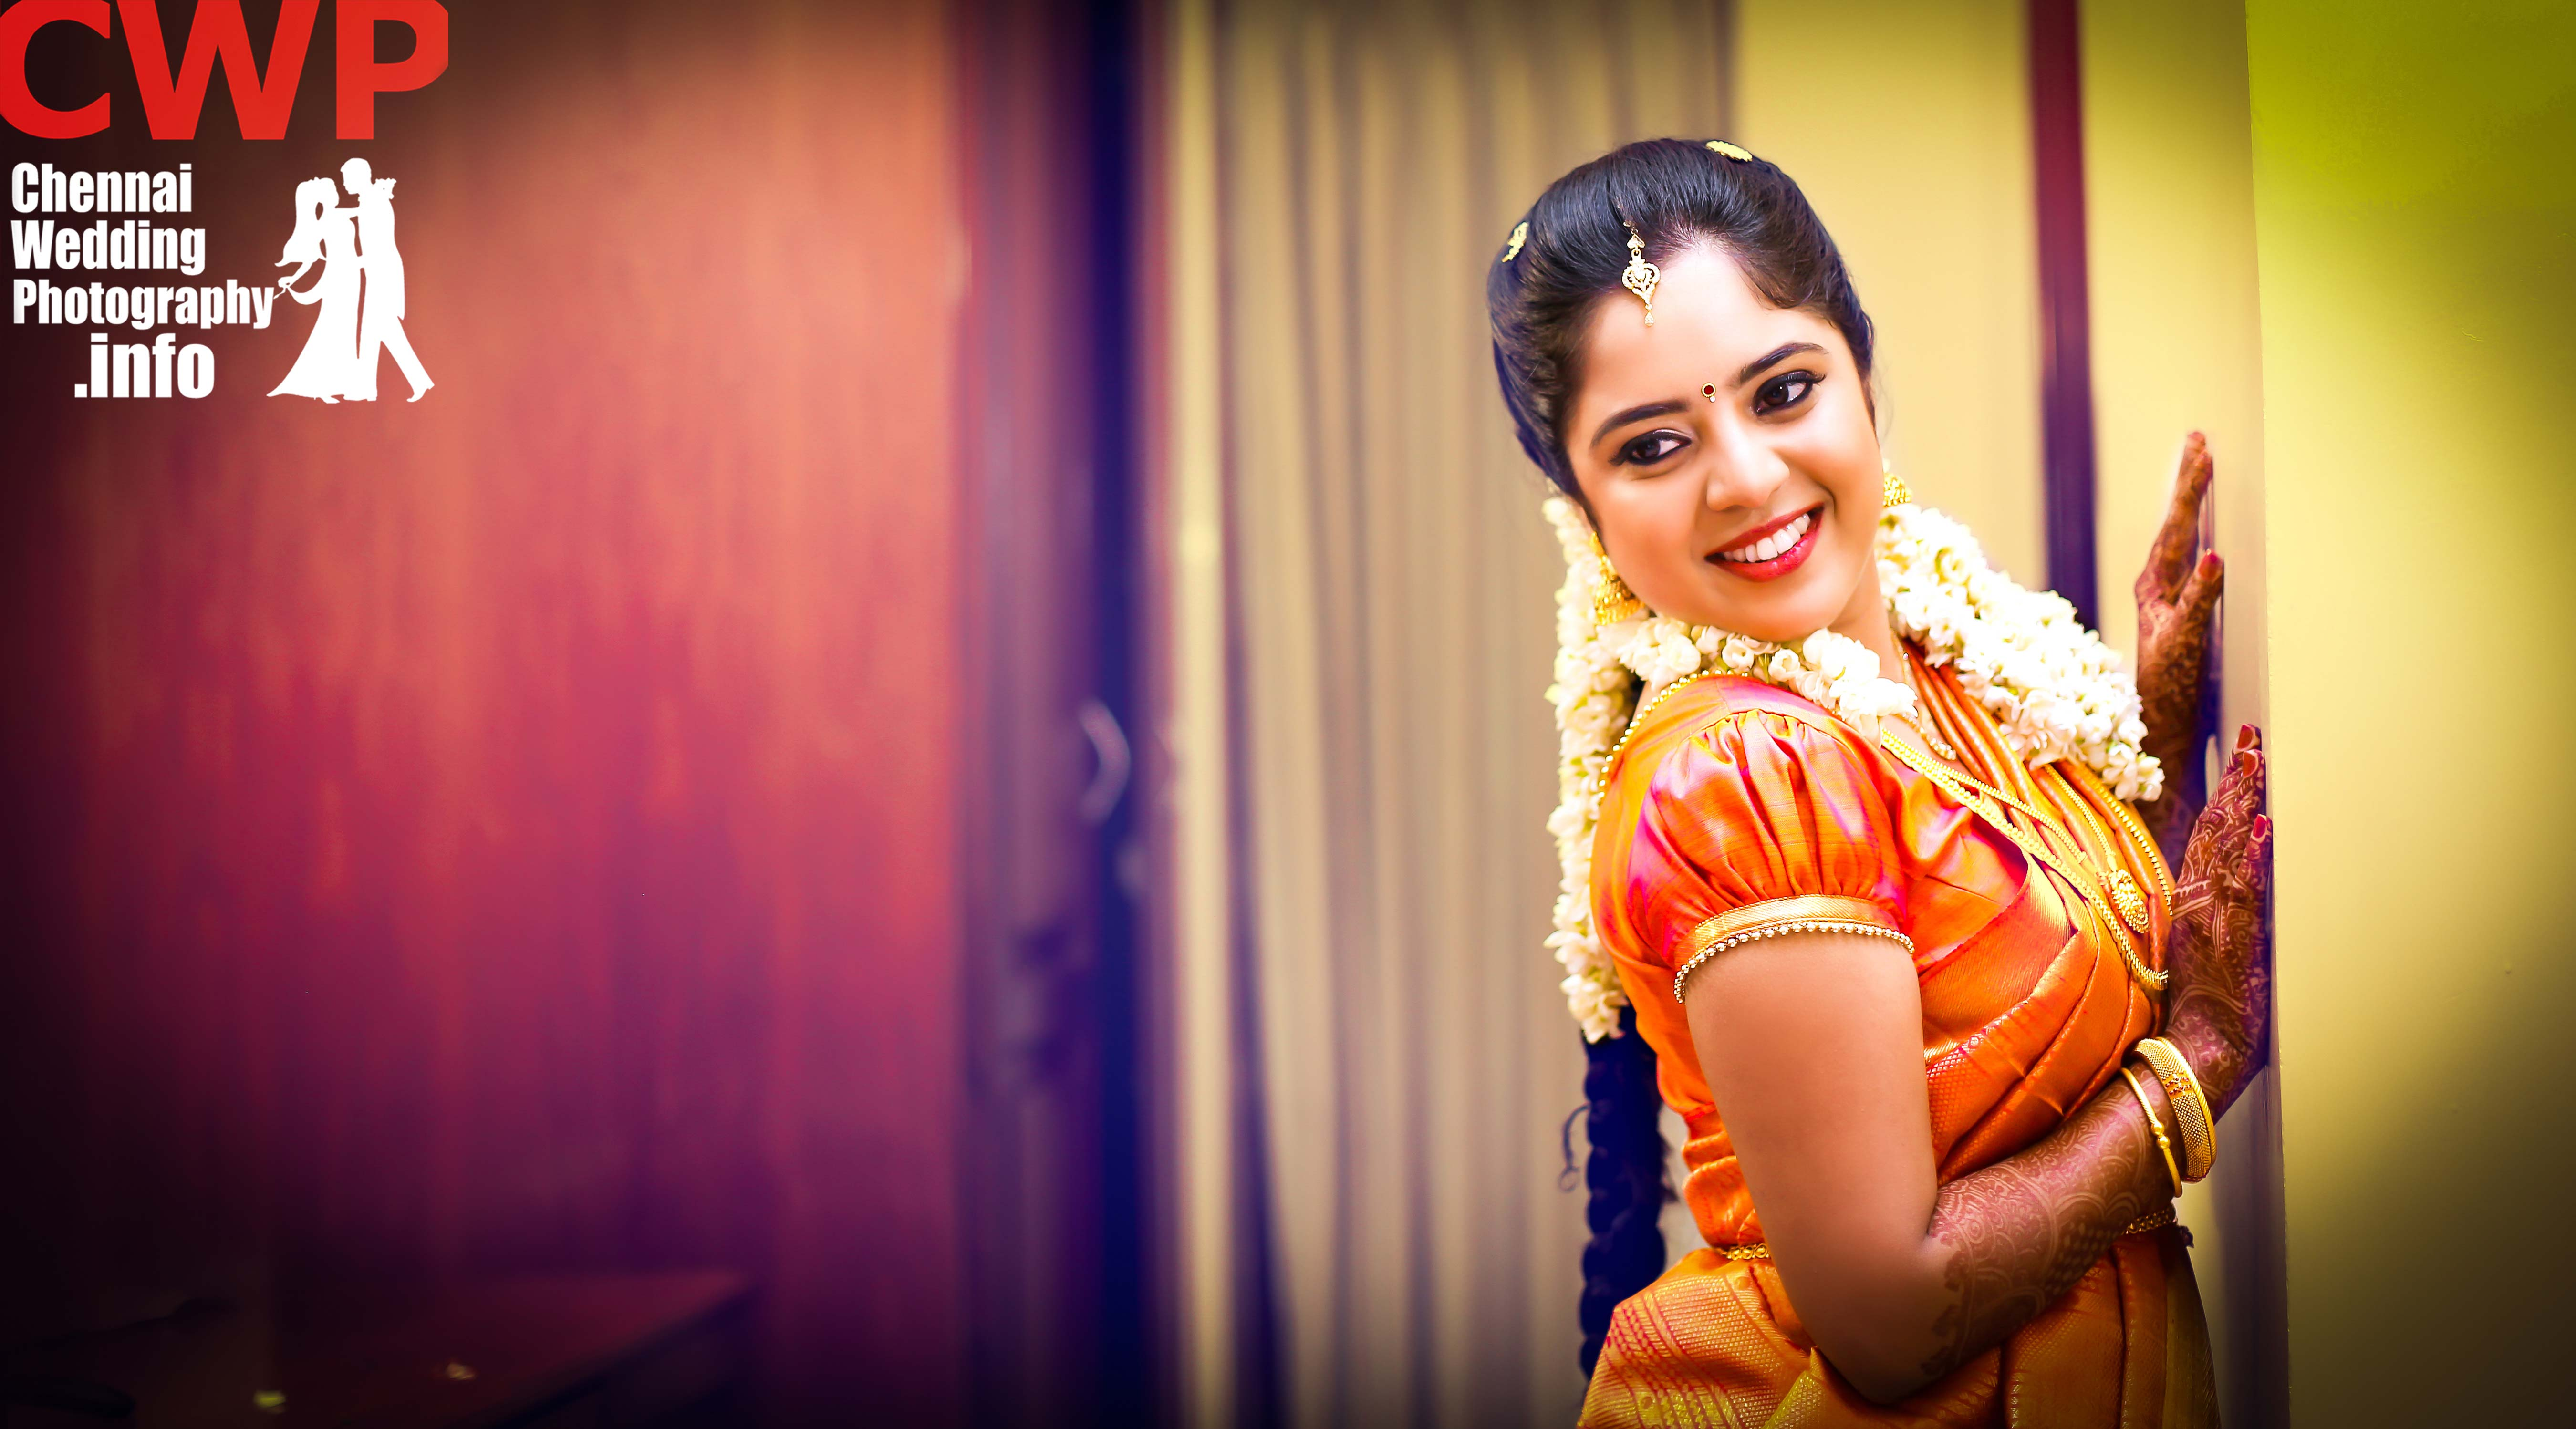 chennaichristianwedding photographer